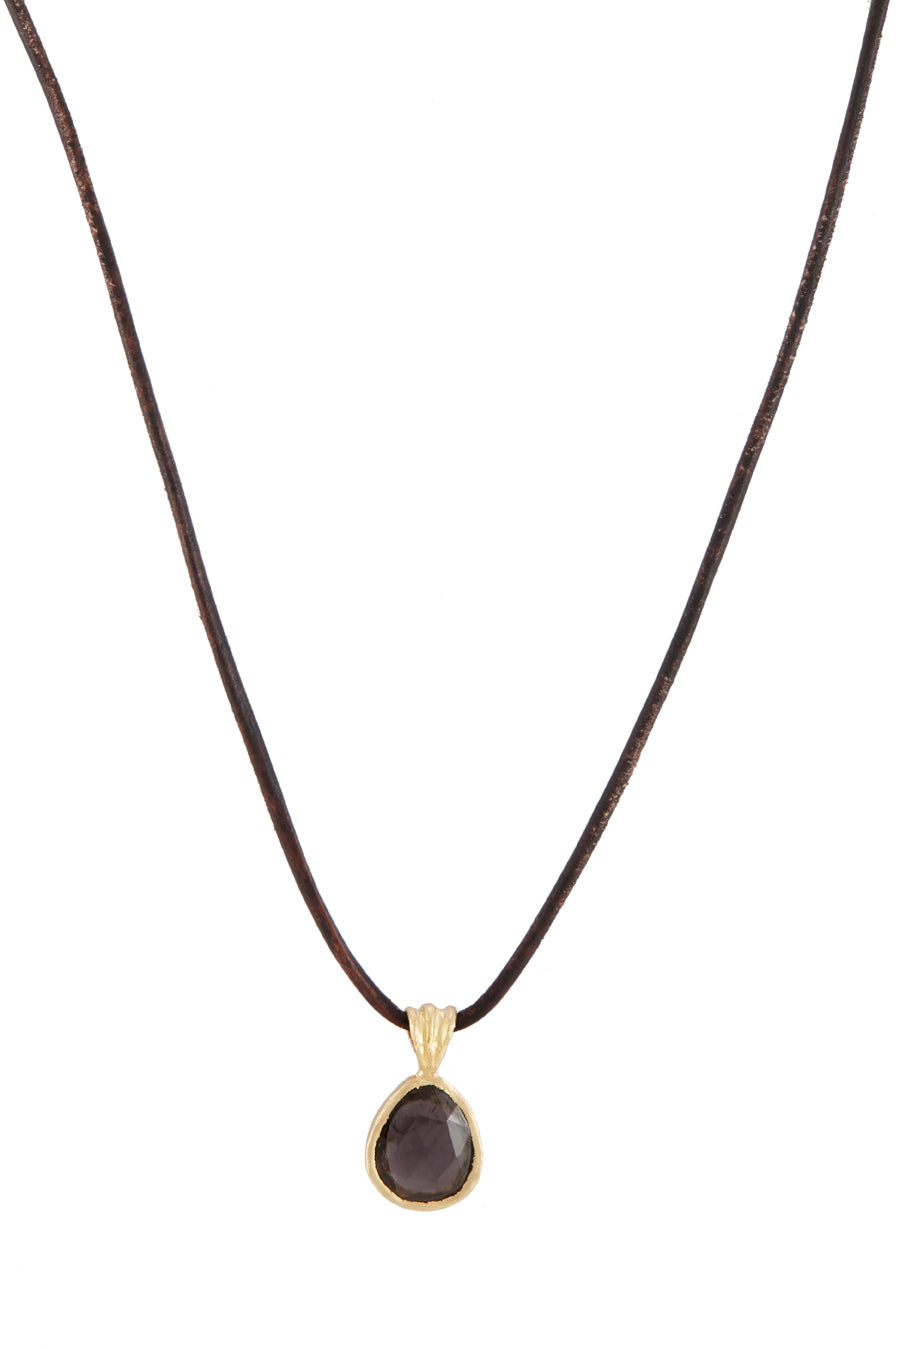 Umi Grey Tourmaline Necklace